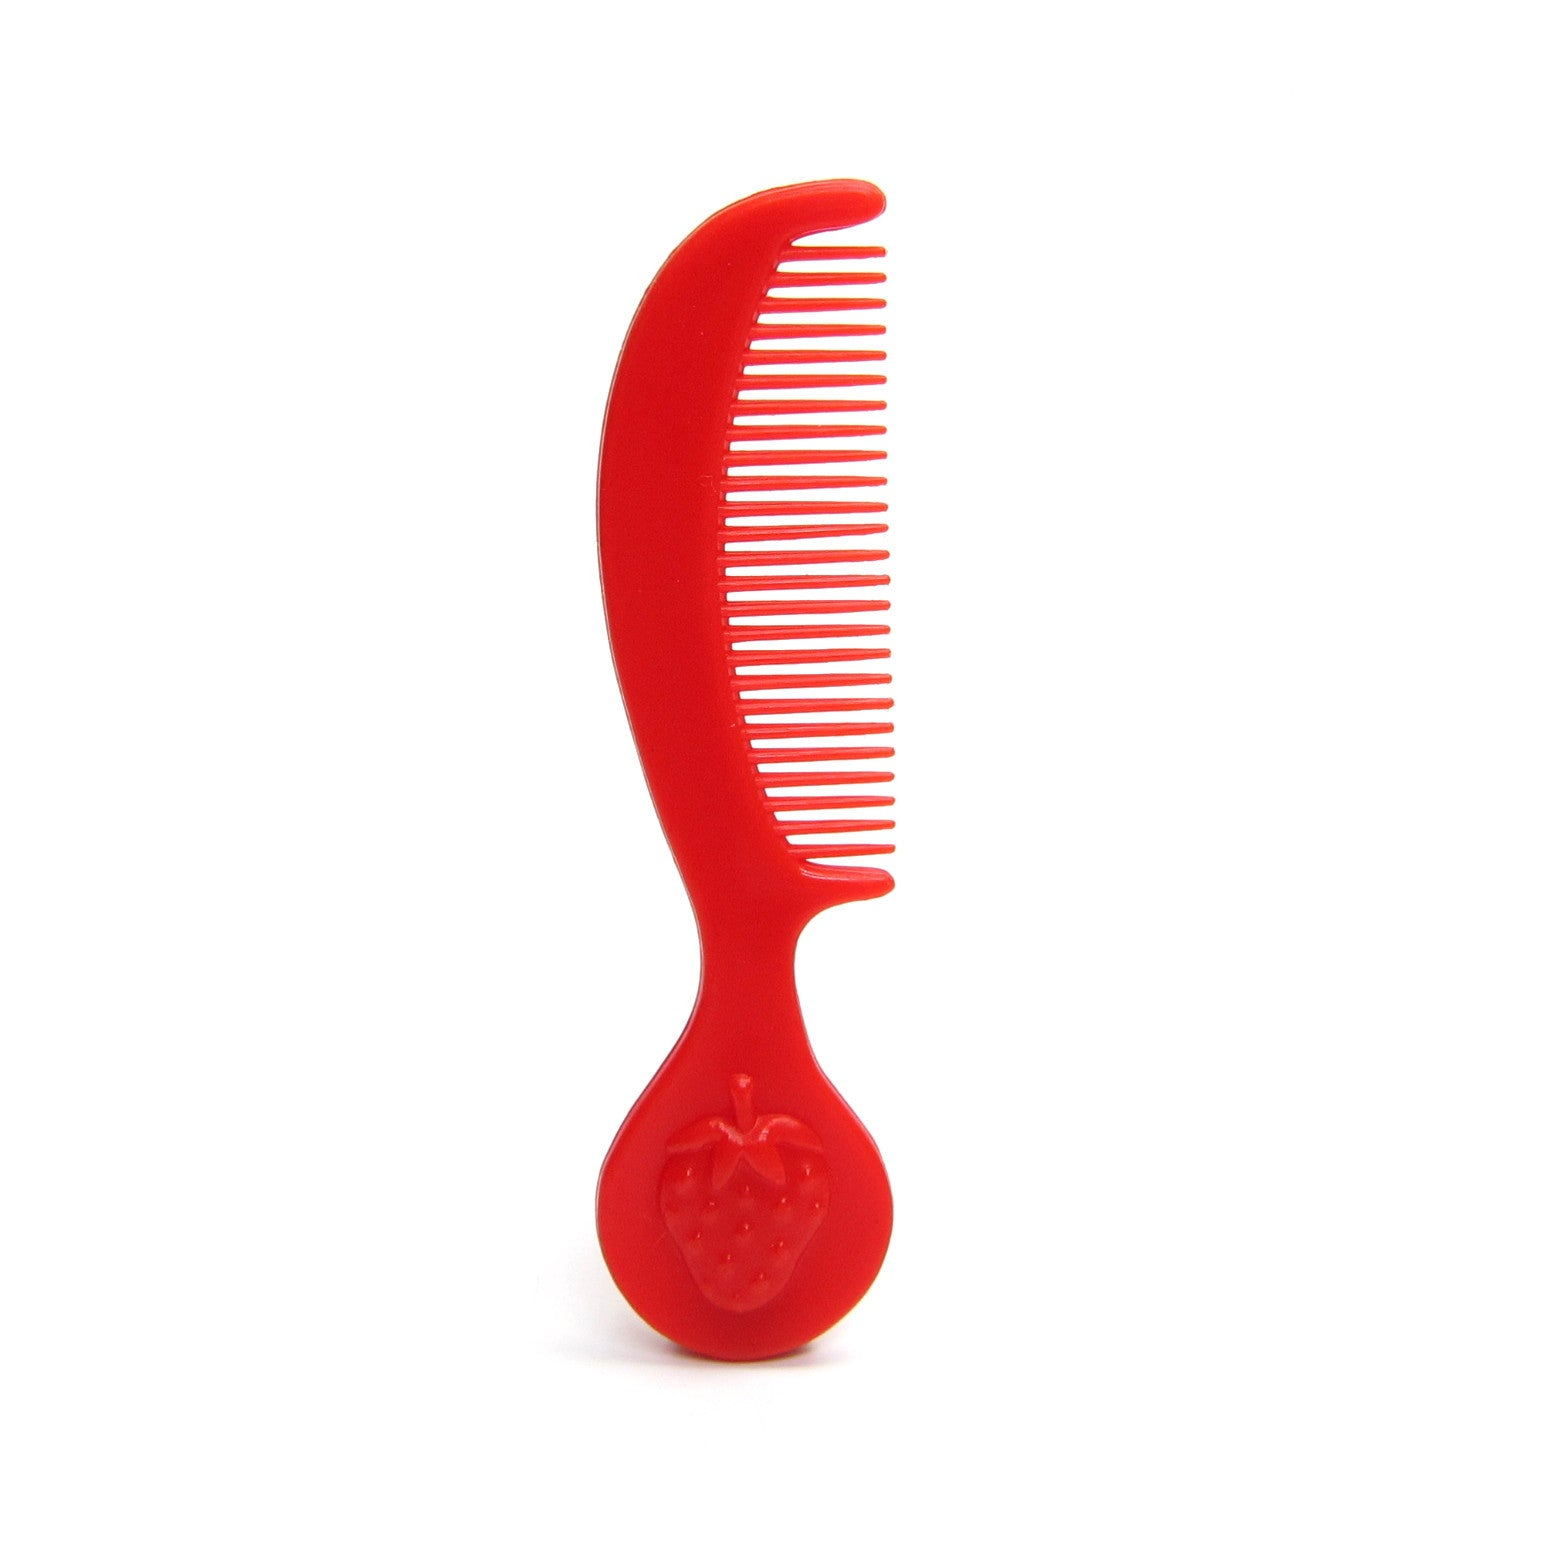 Strawberry Shortcake red berry hair comb